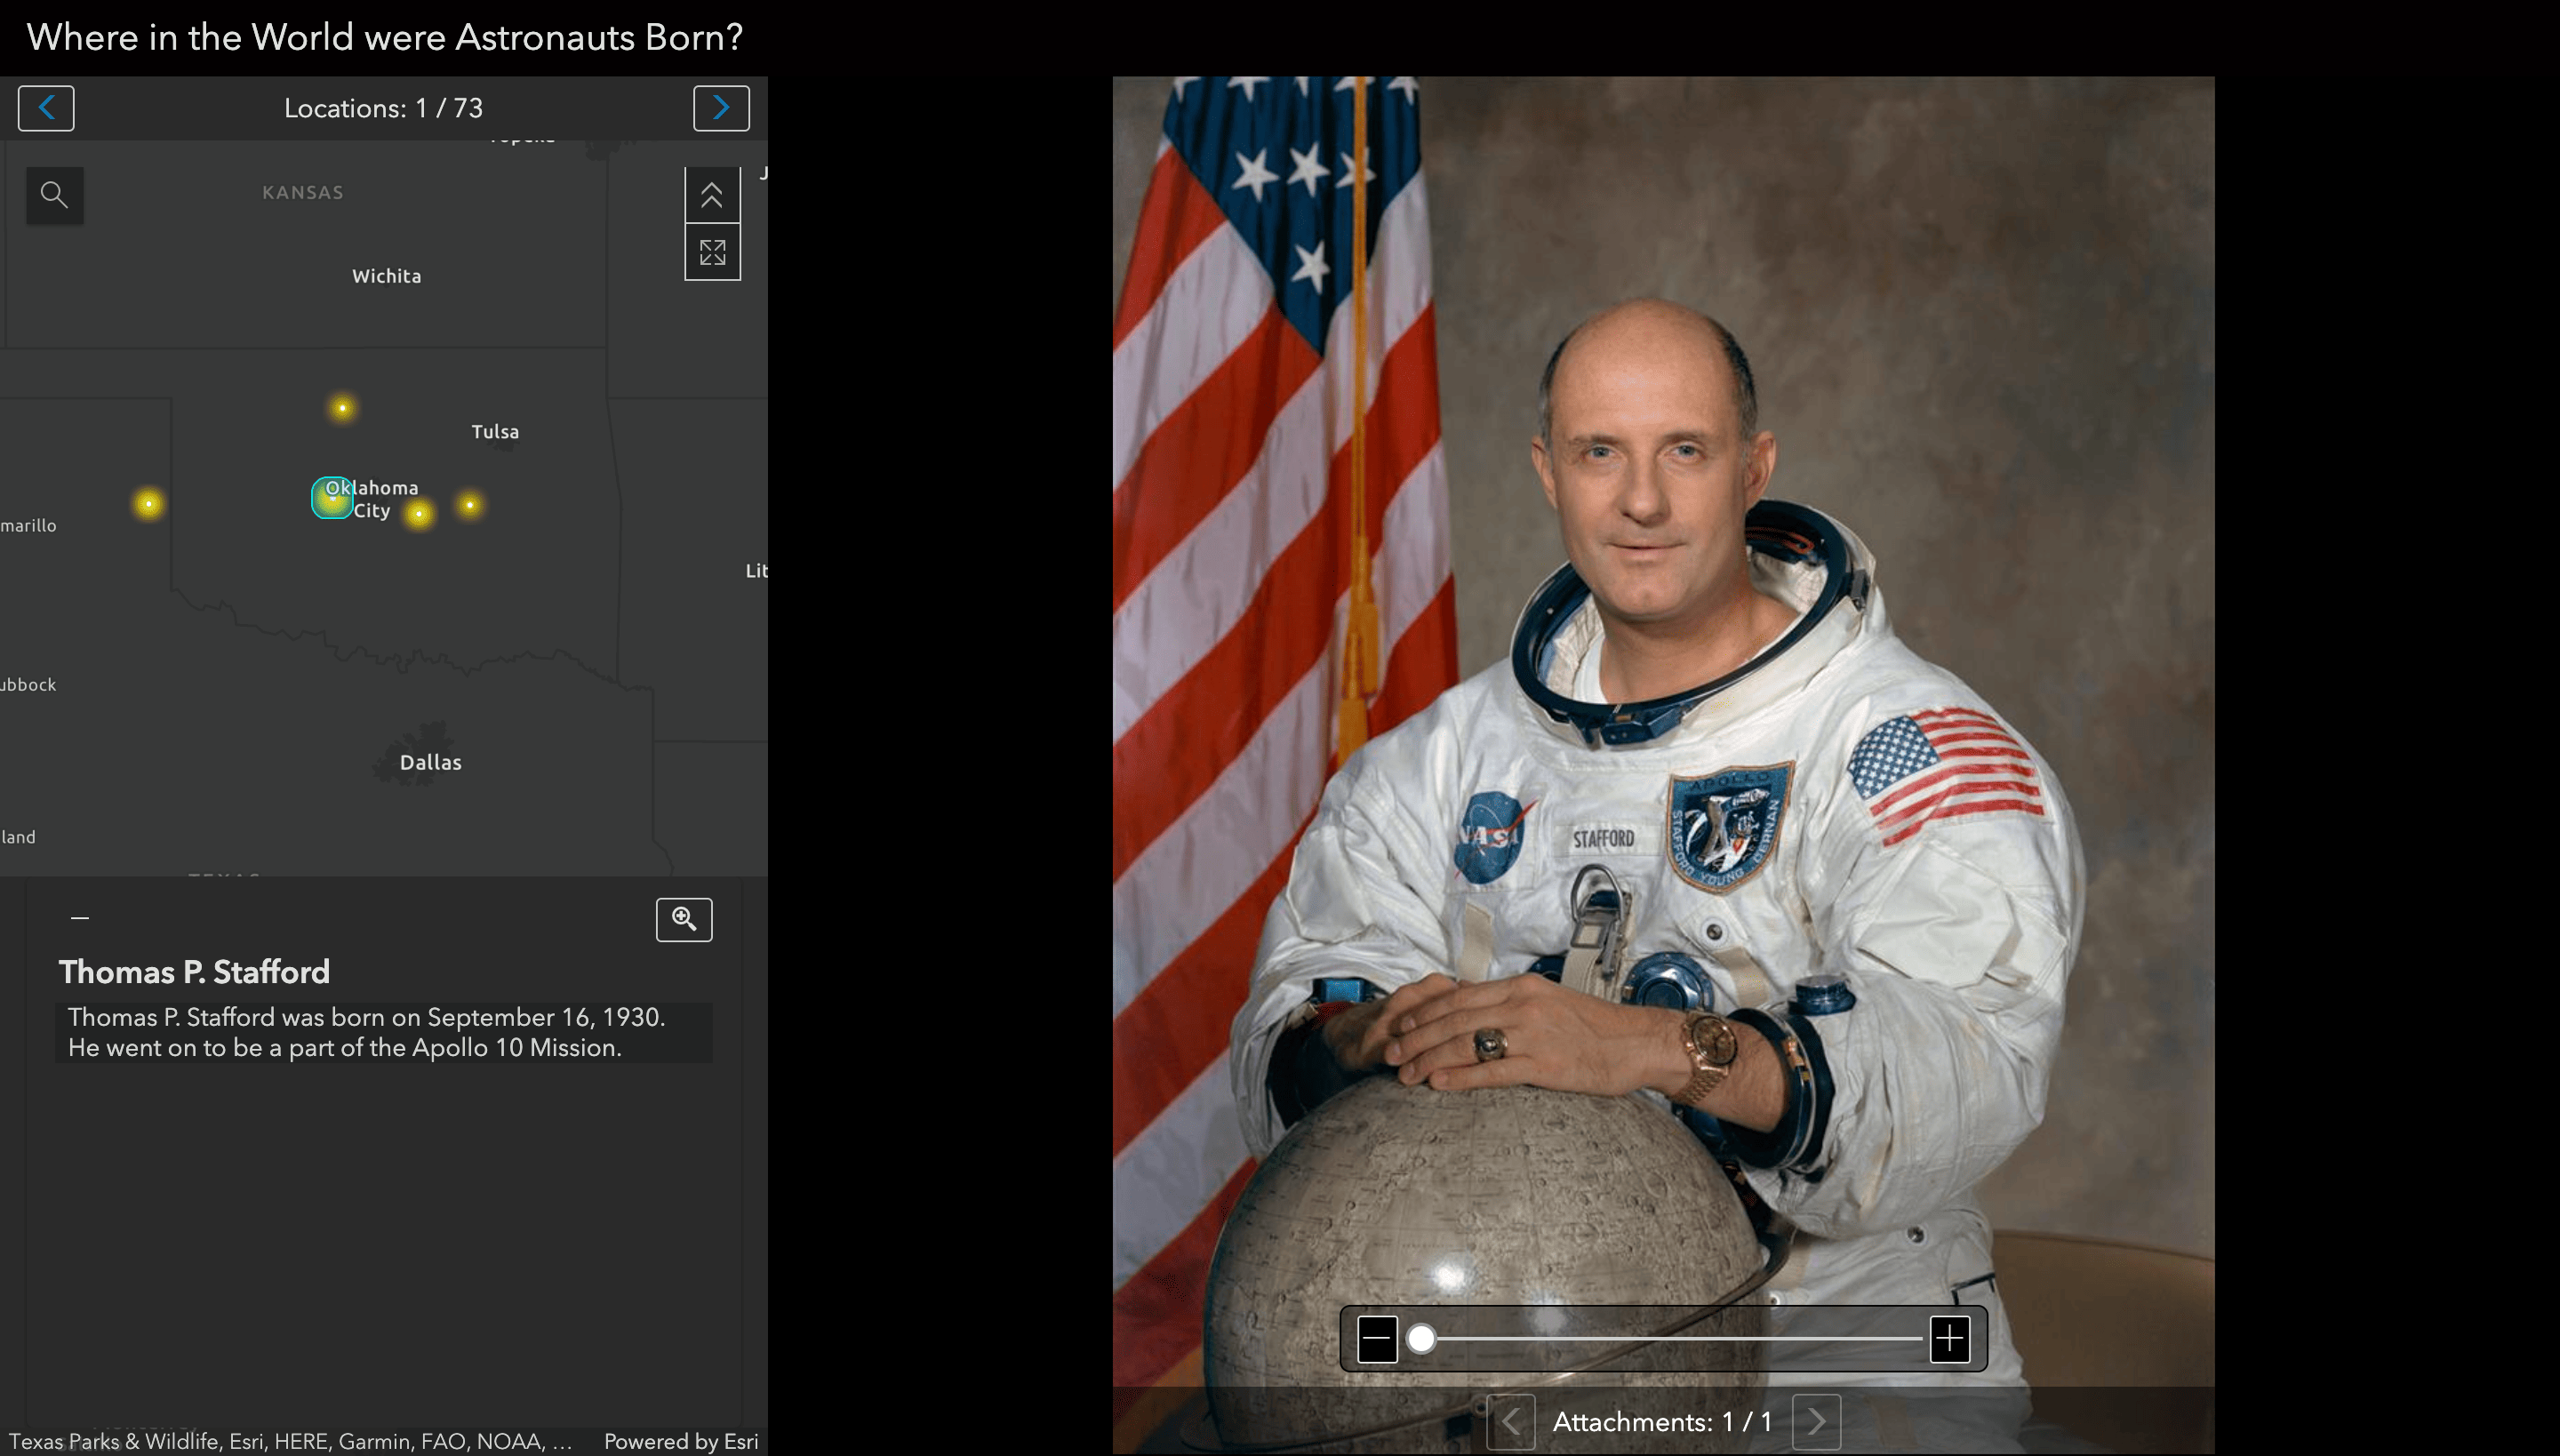 A Attachment Viewer Instant App opened to Astronaut Thomas Stafford and his birthplace